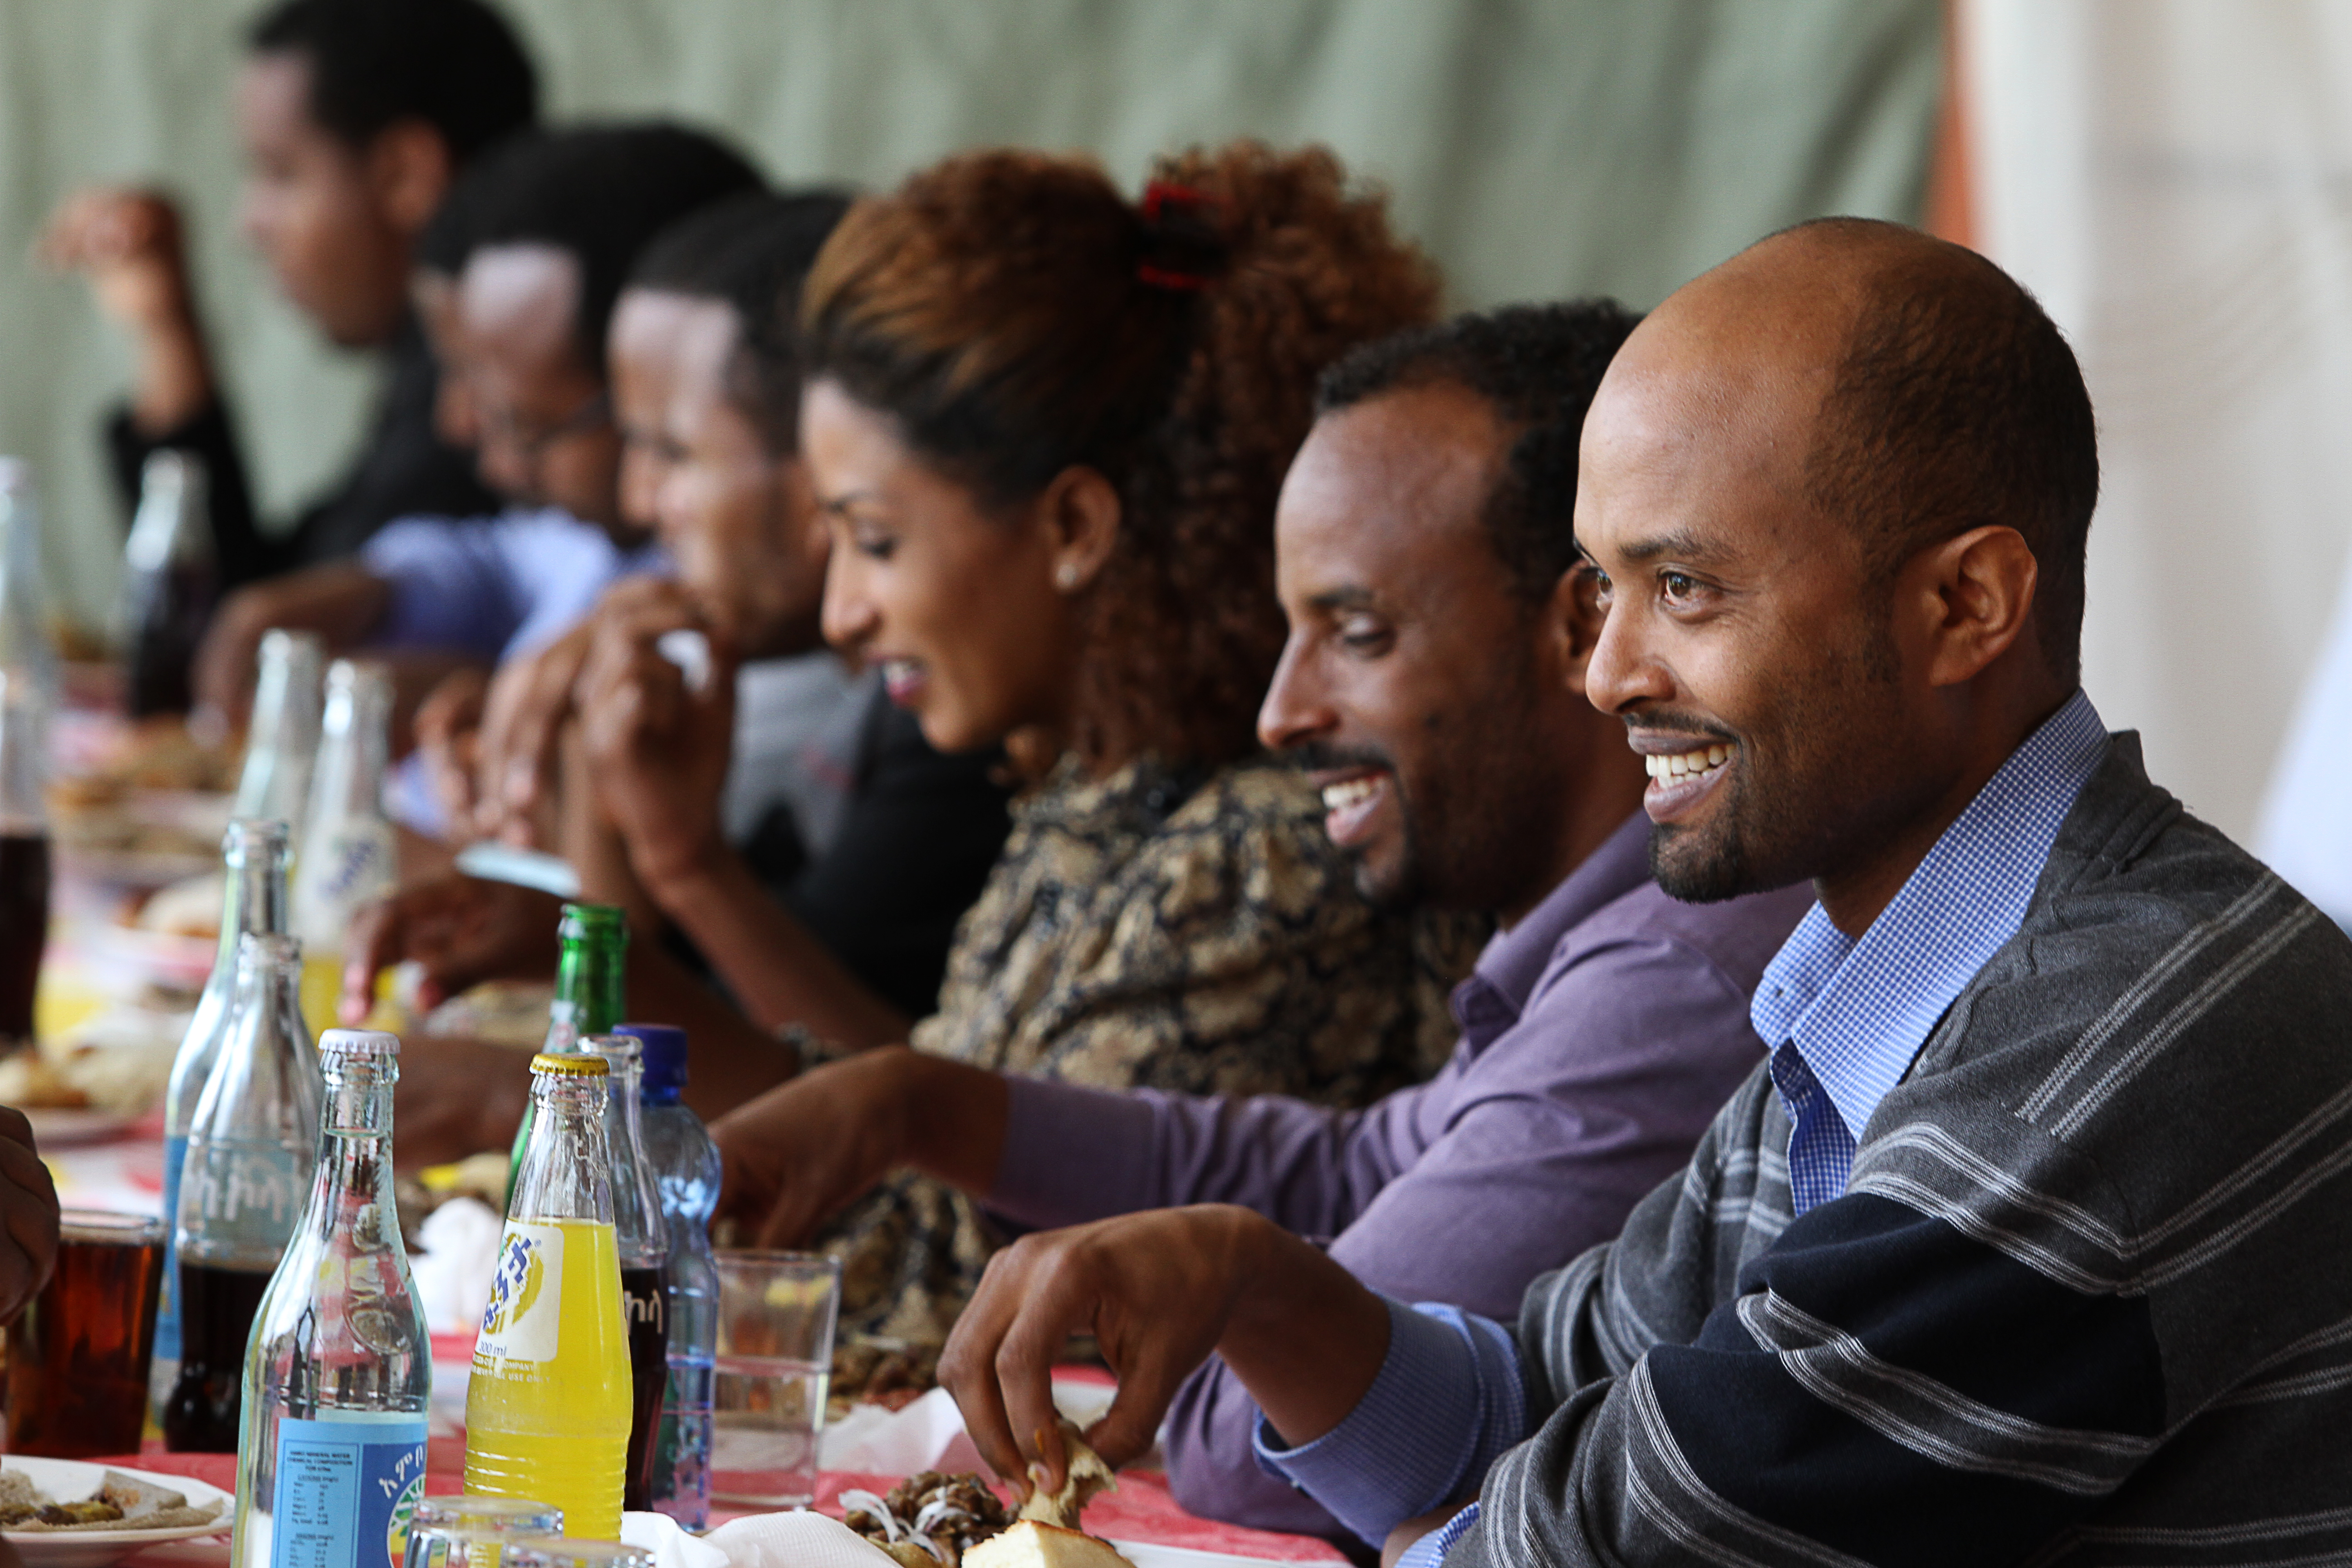 Lunch at Addis Ababa University.